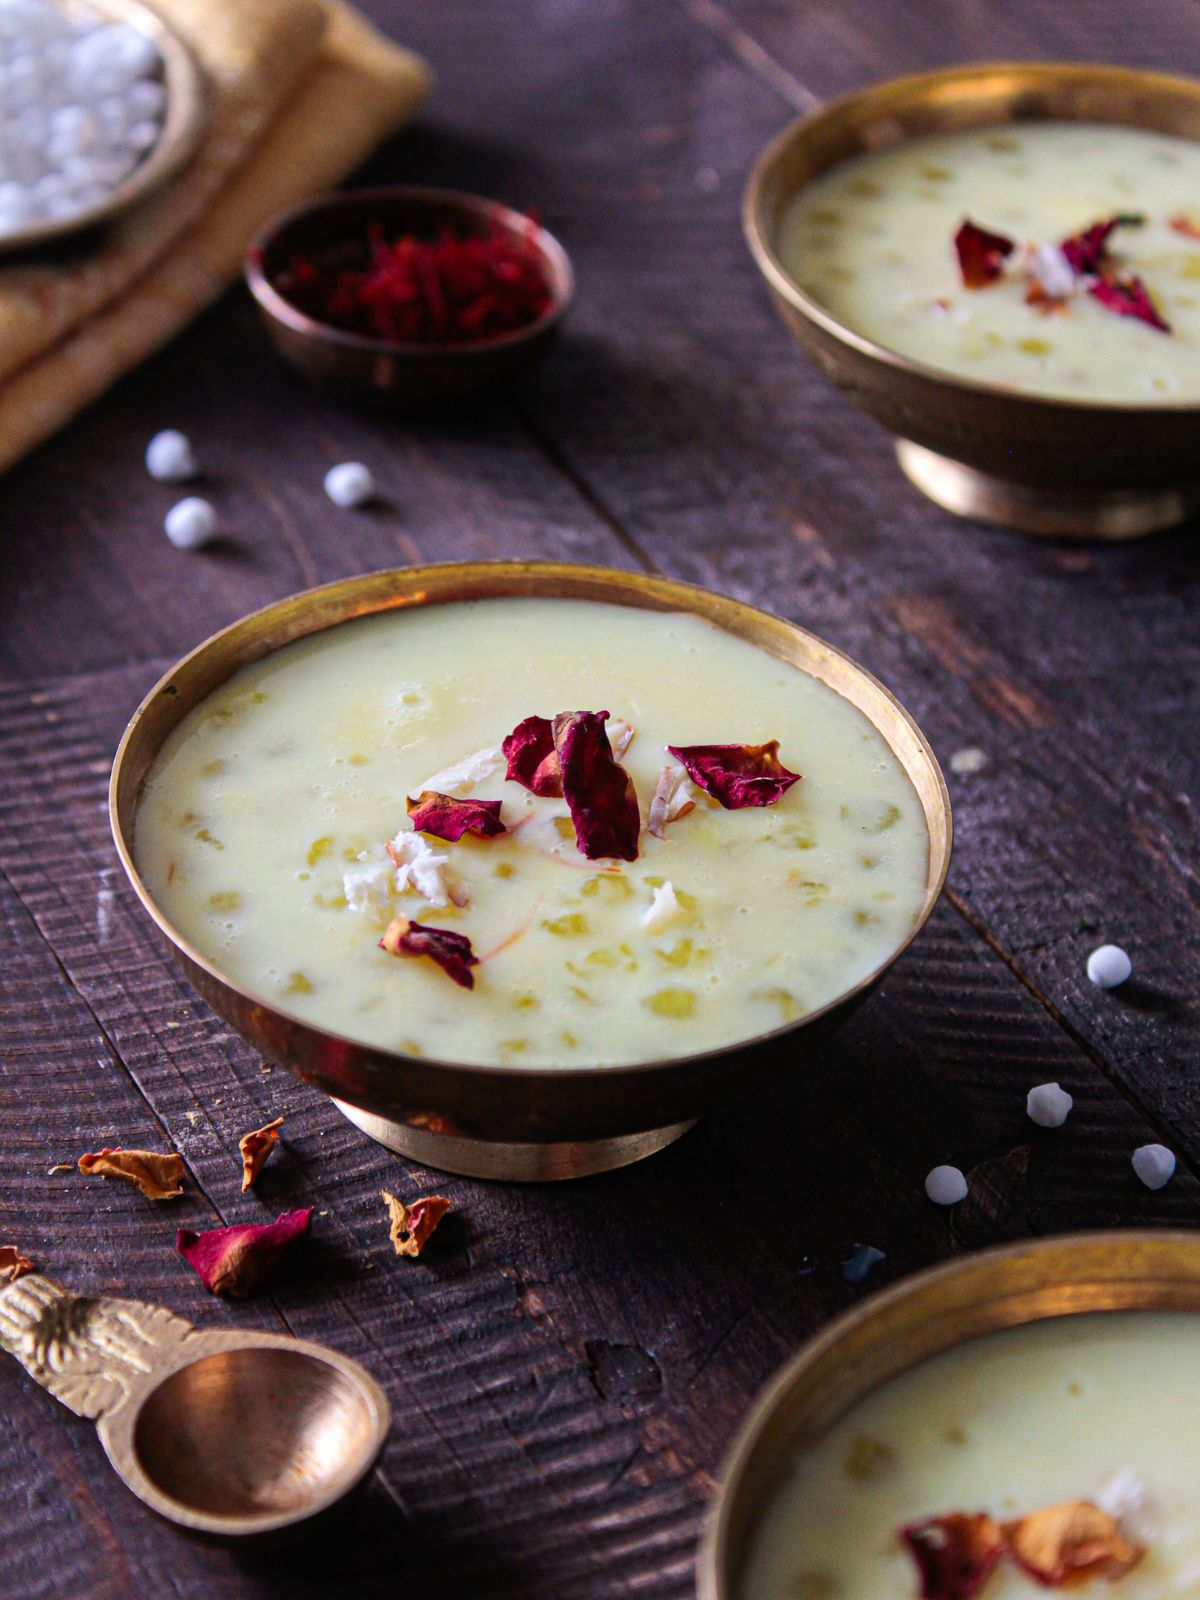 Sabudana Kheer ready to eat served in golden bowl and garnished with safron and dry rose petals